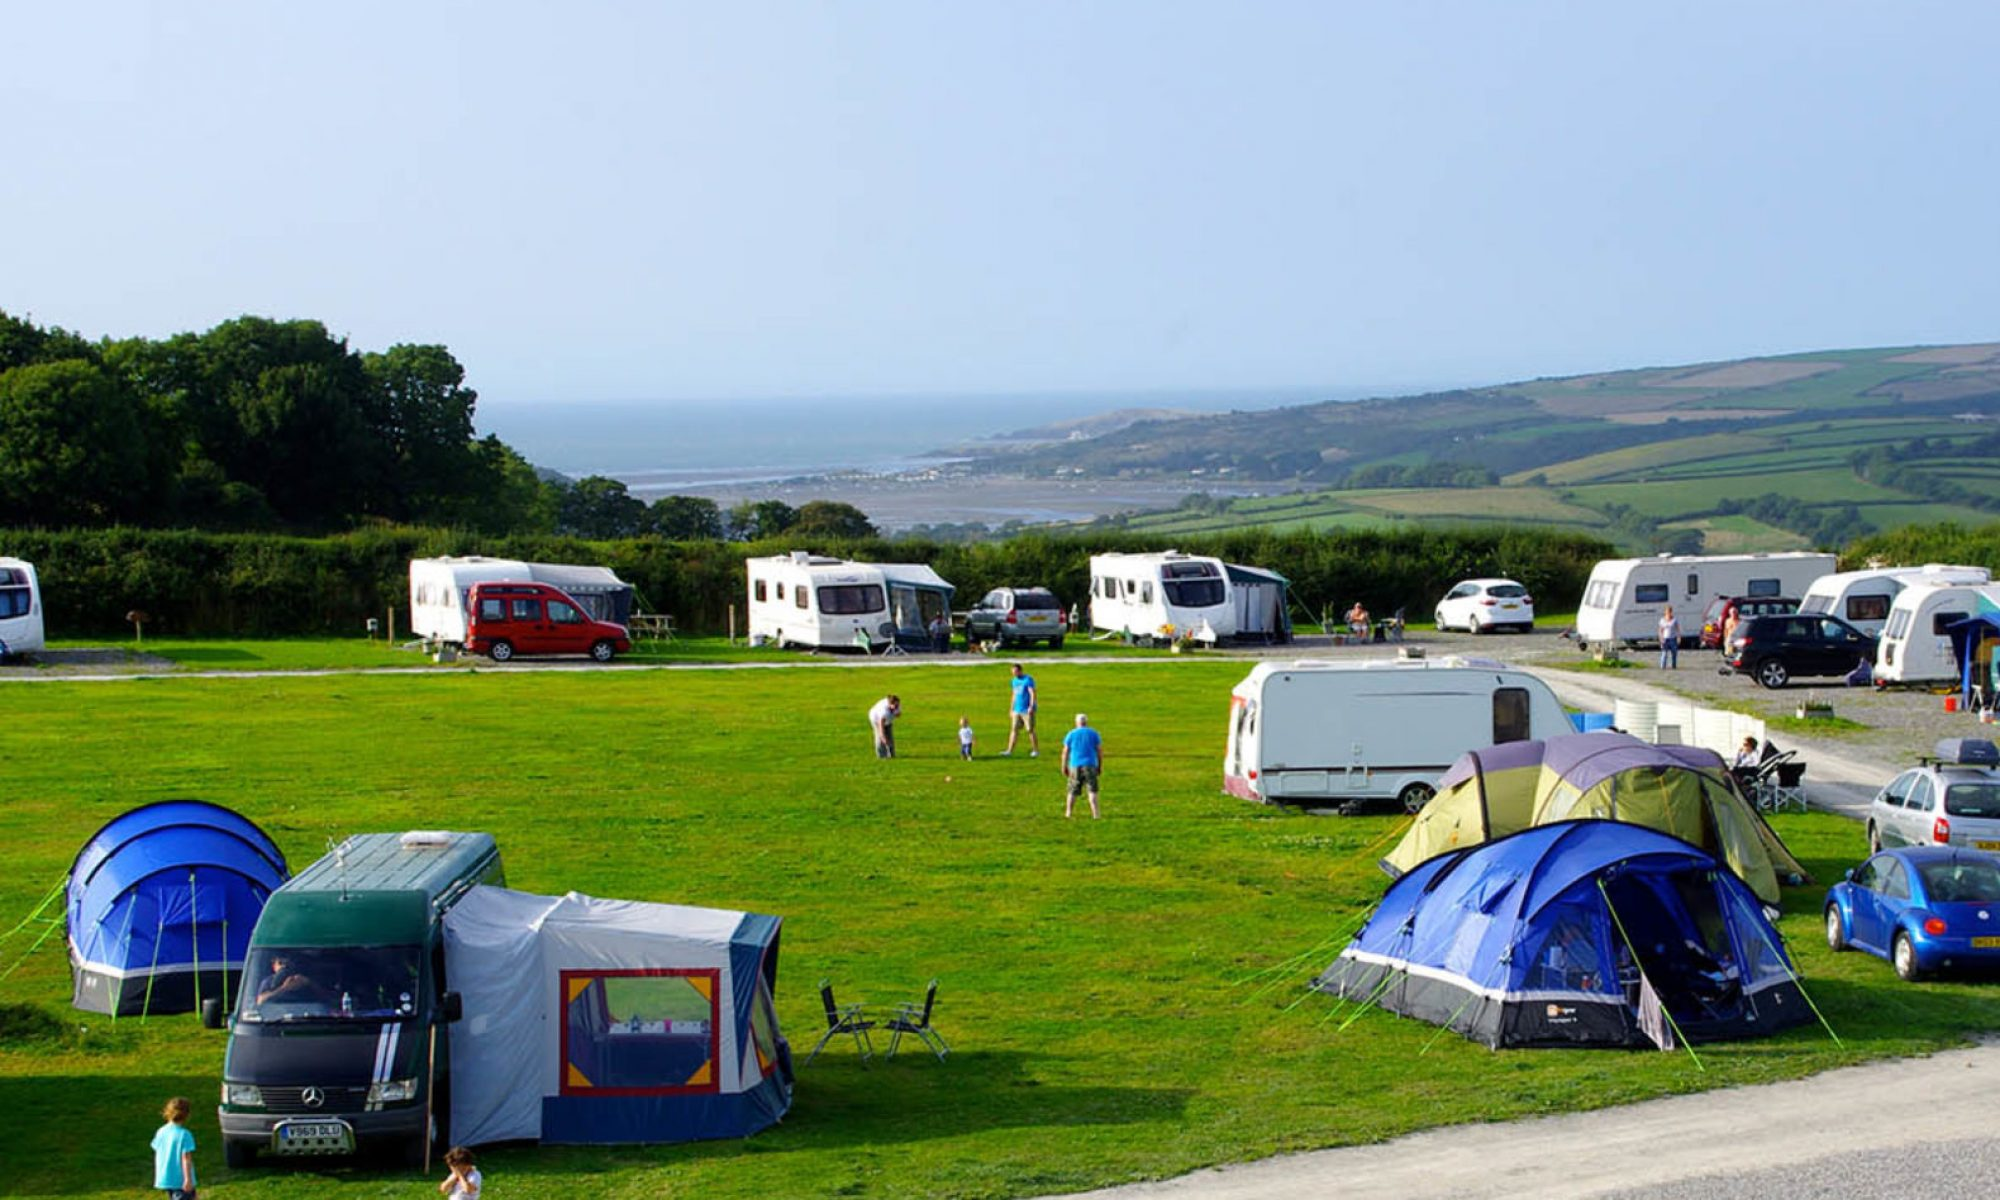 Cardigan Camping and Caravan Site